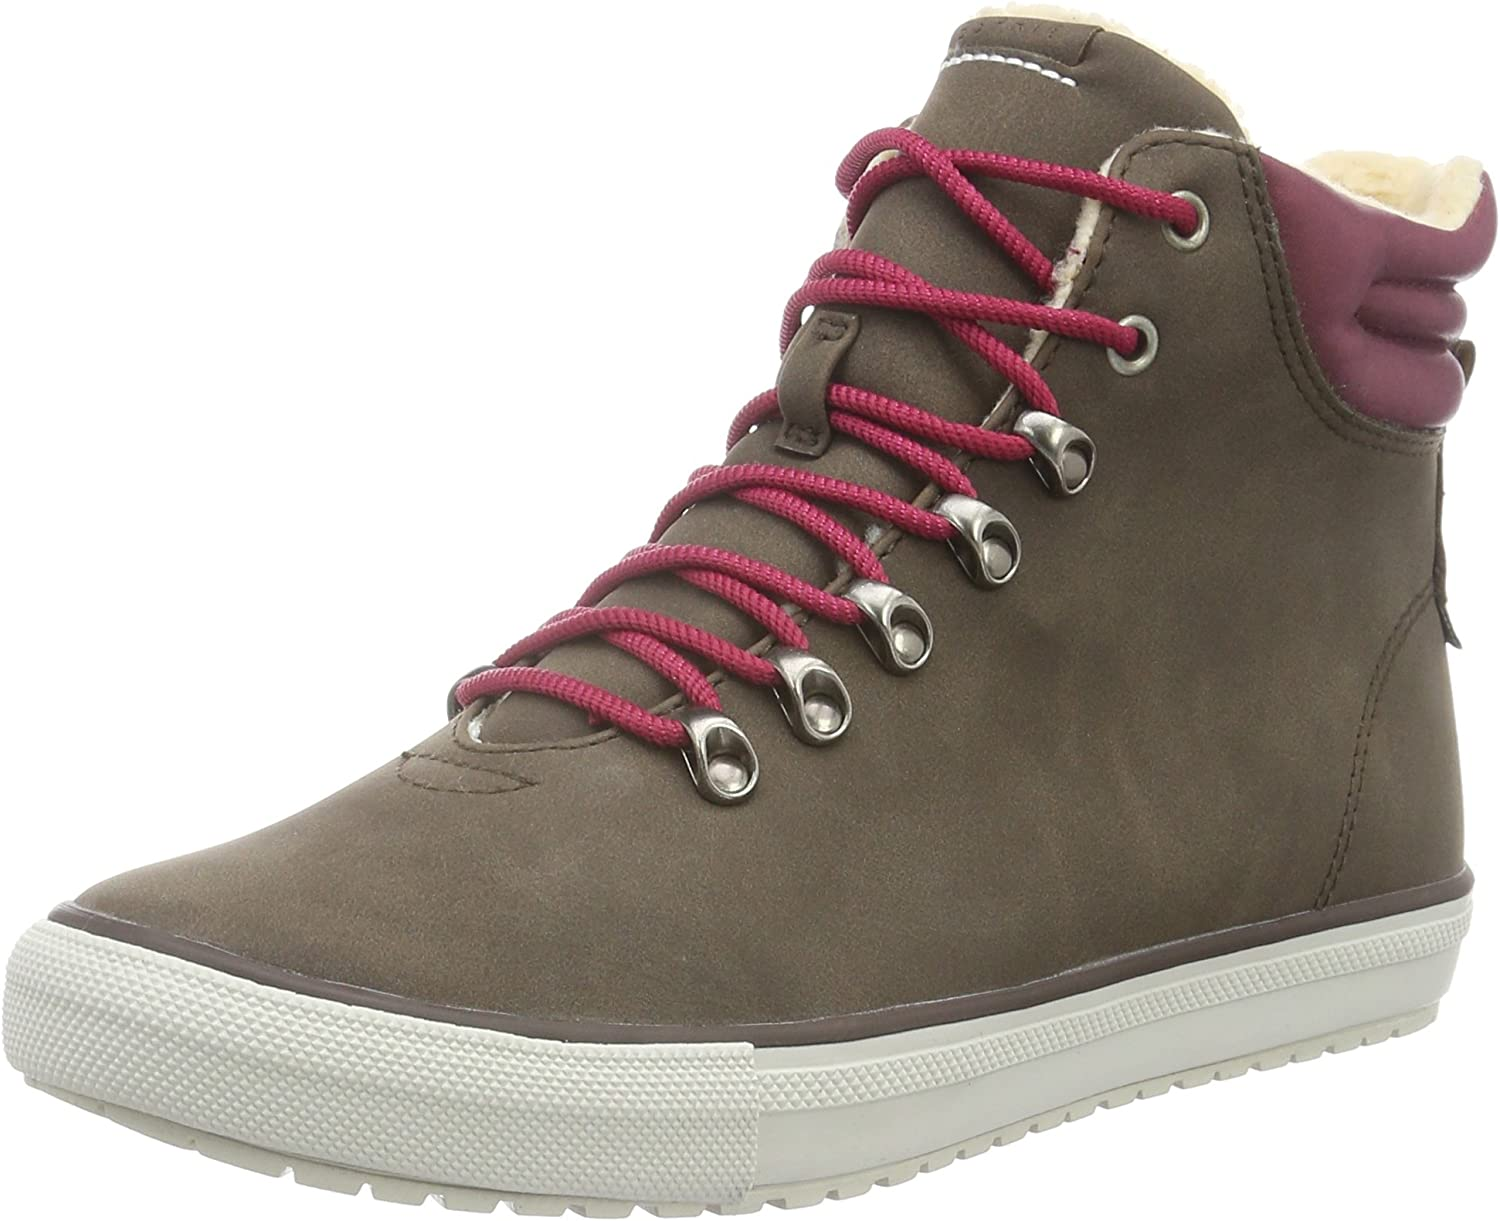 ESPRIT Mika Bootie, Women's Hi-Top Sneakers